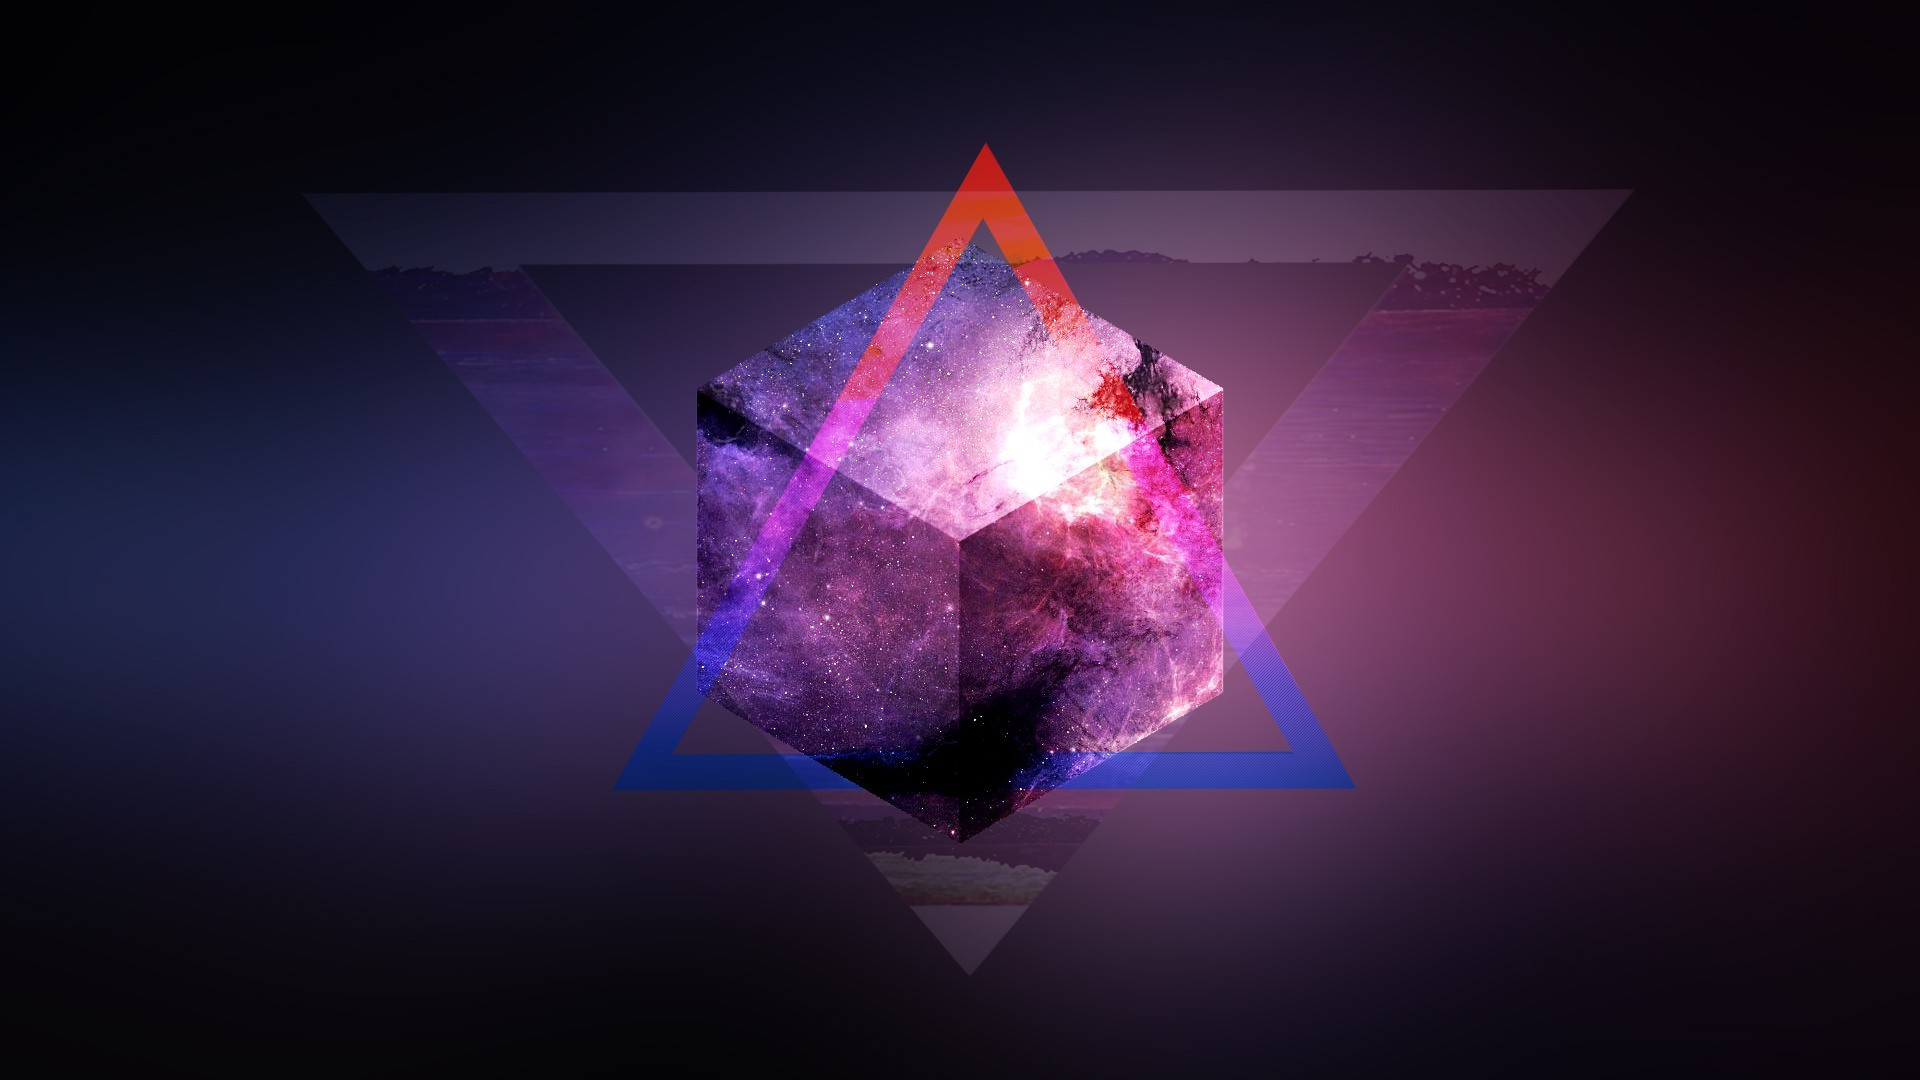 Iphone X Fortnite Wallpapers Space Mix Up Purple Triangle Blurred 3d Wallpapers Hd